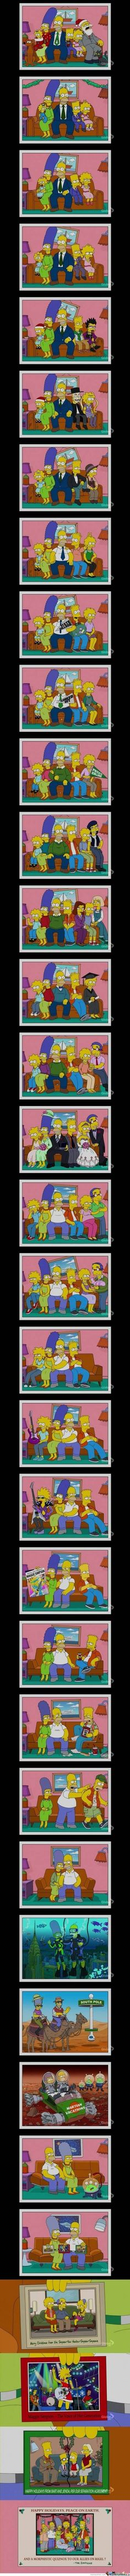 Community Post: The Simpsons Grow Up